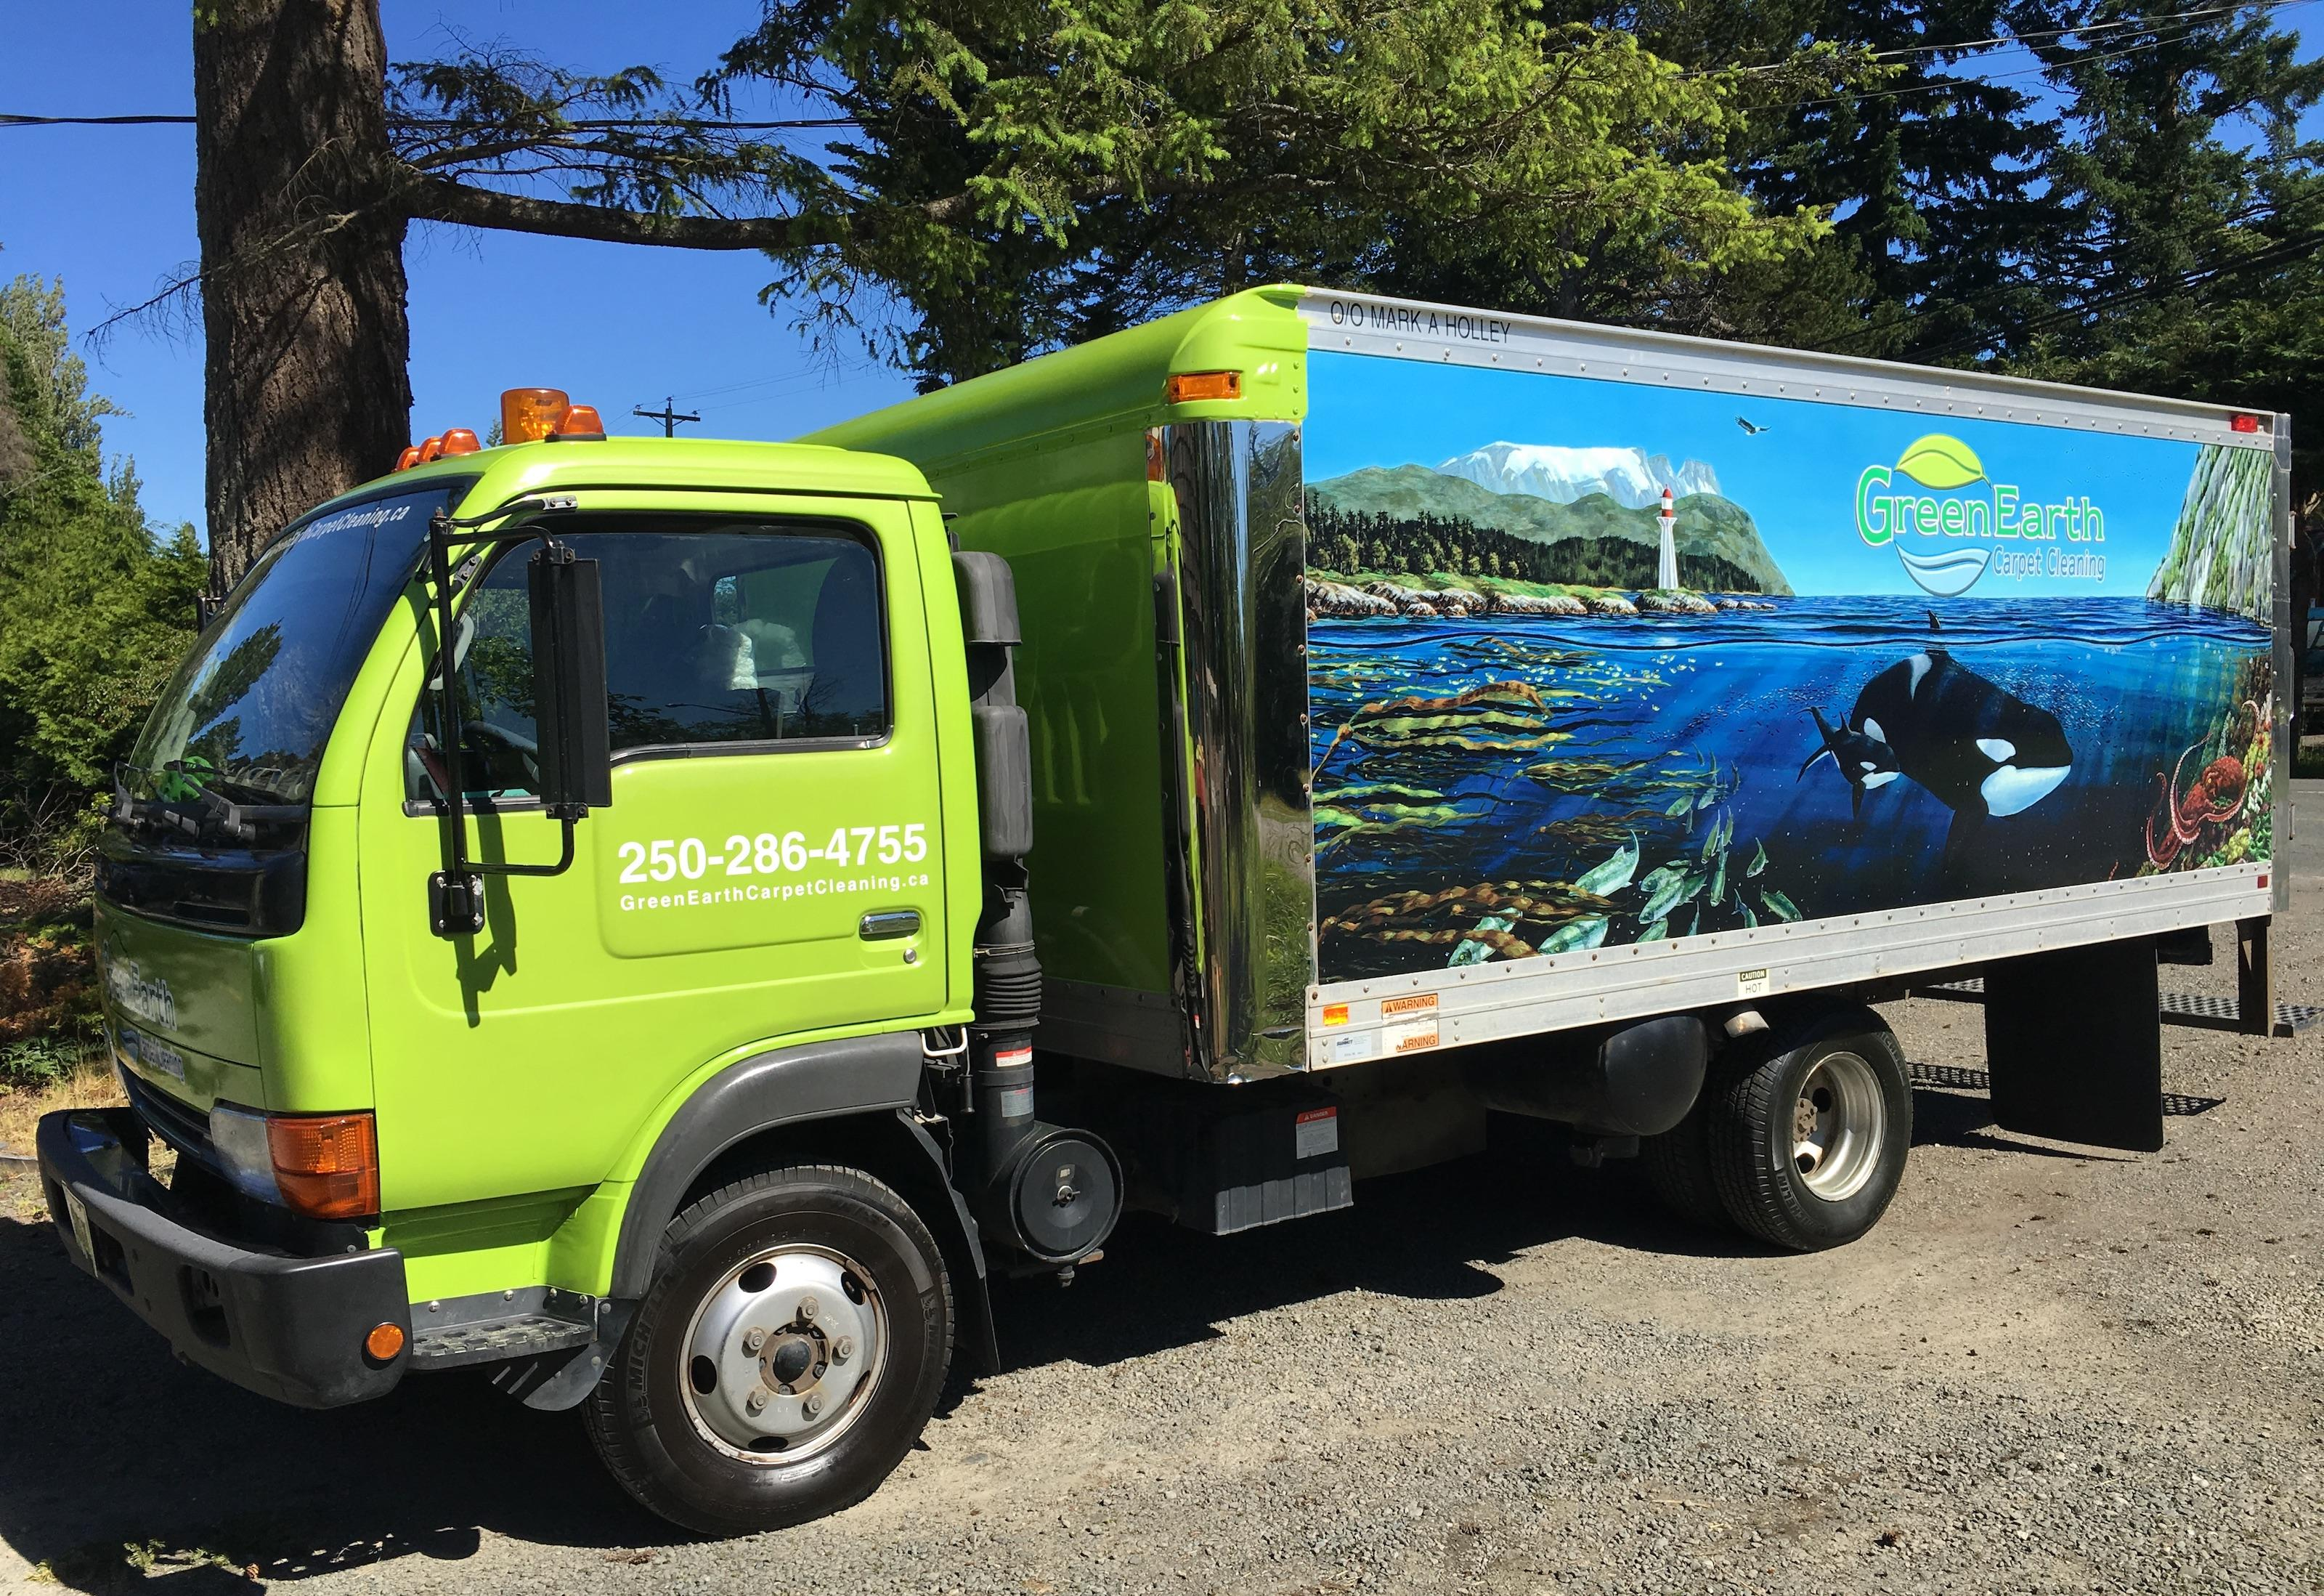 Campbell River Green Earth Carpet Cleaning